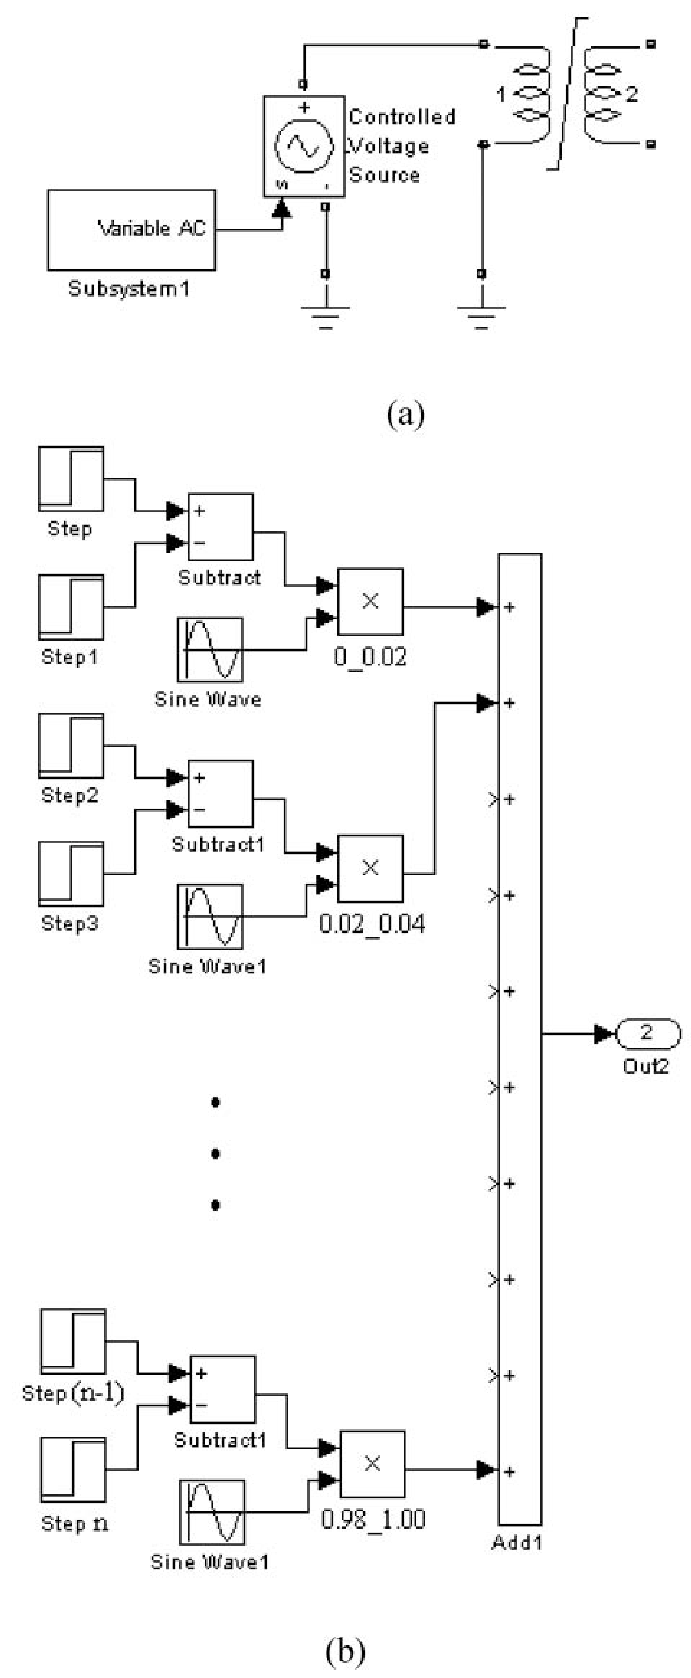 hight resolution of  a variable ac voltage source providing input to the transformer model and